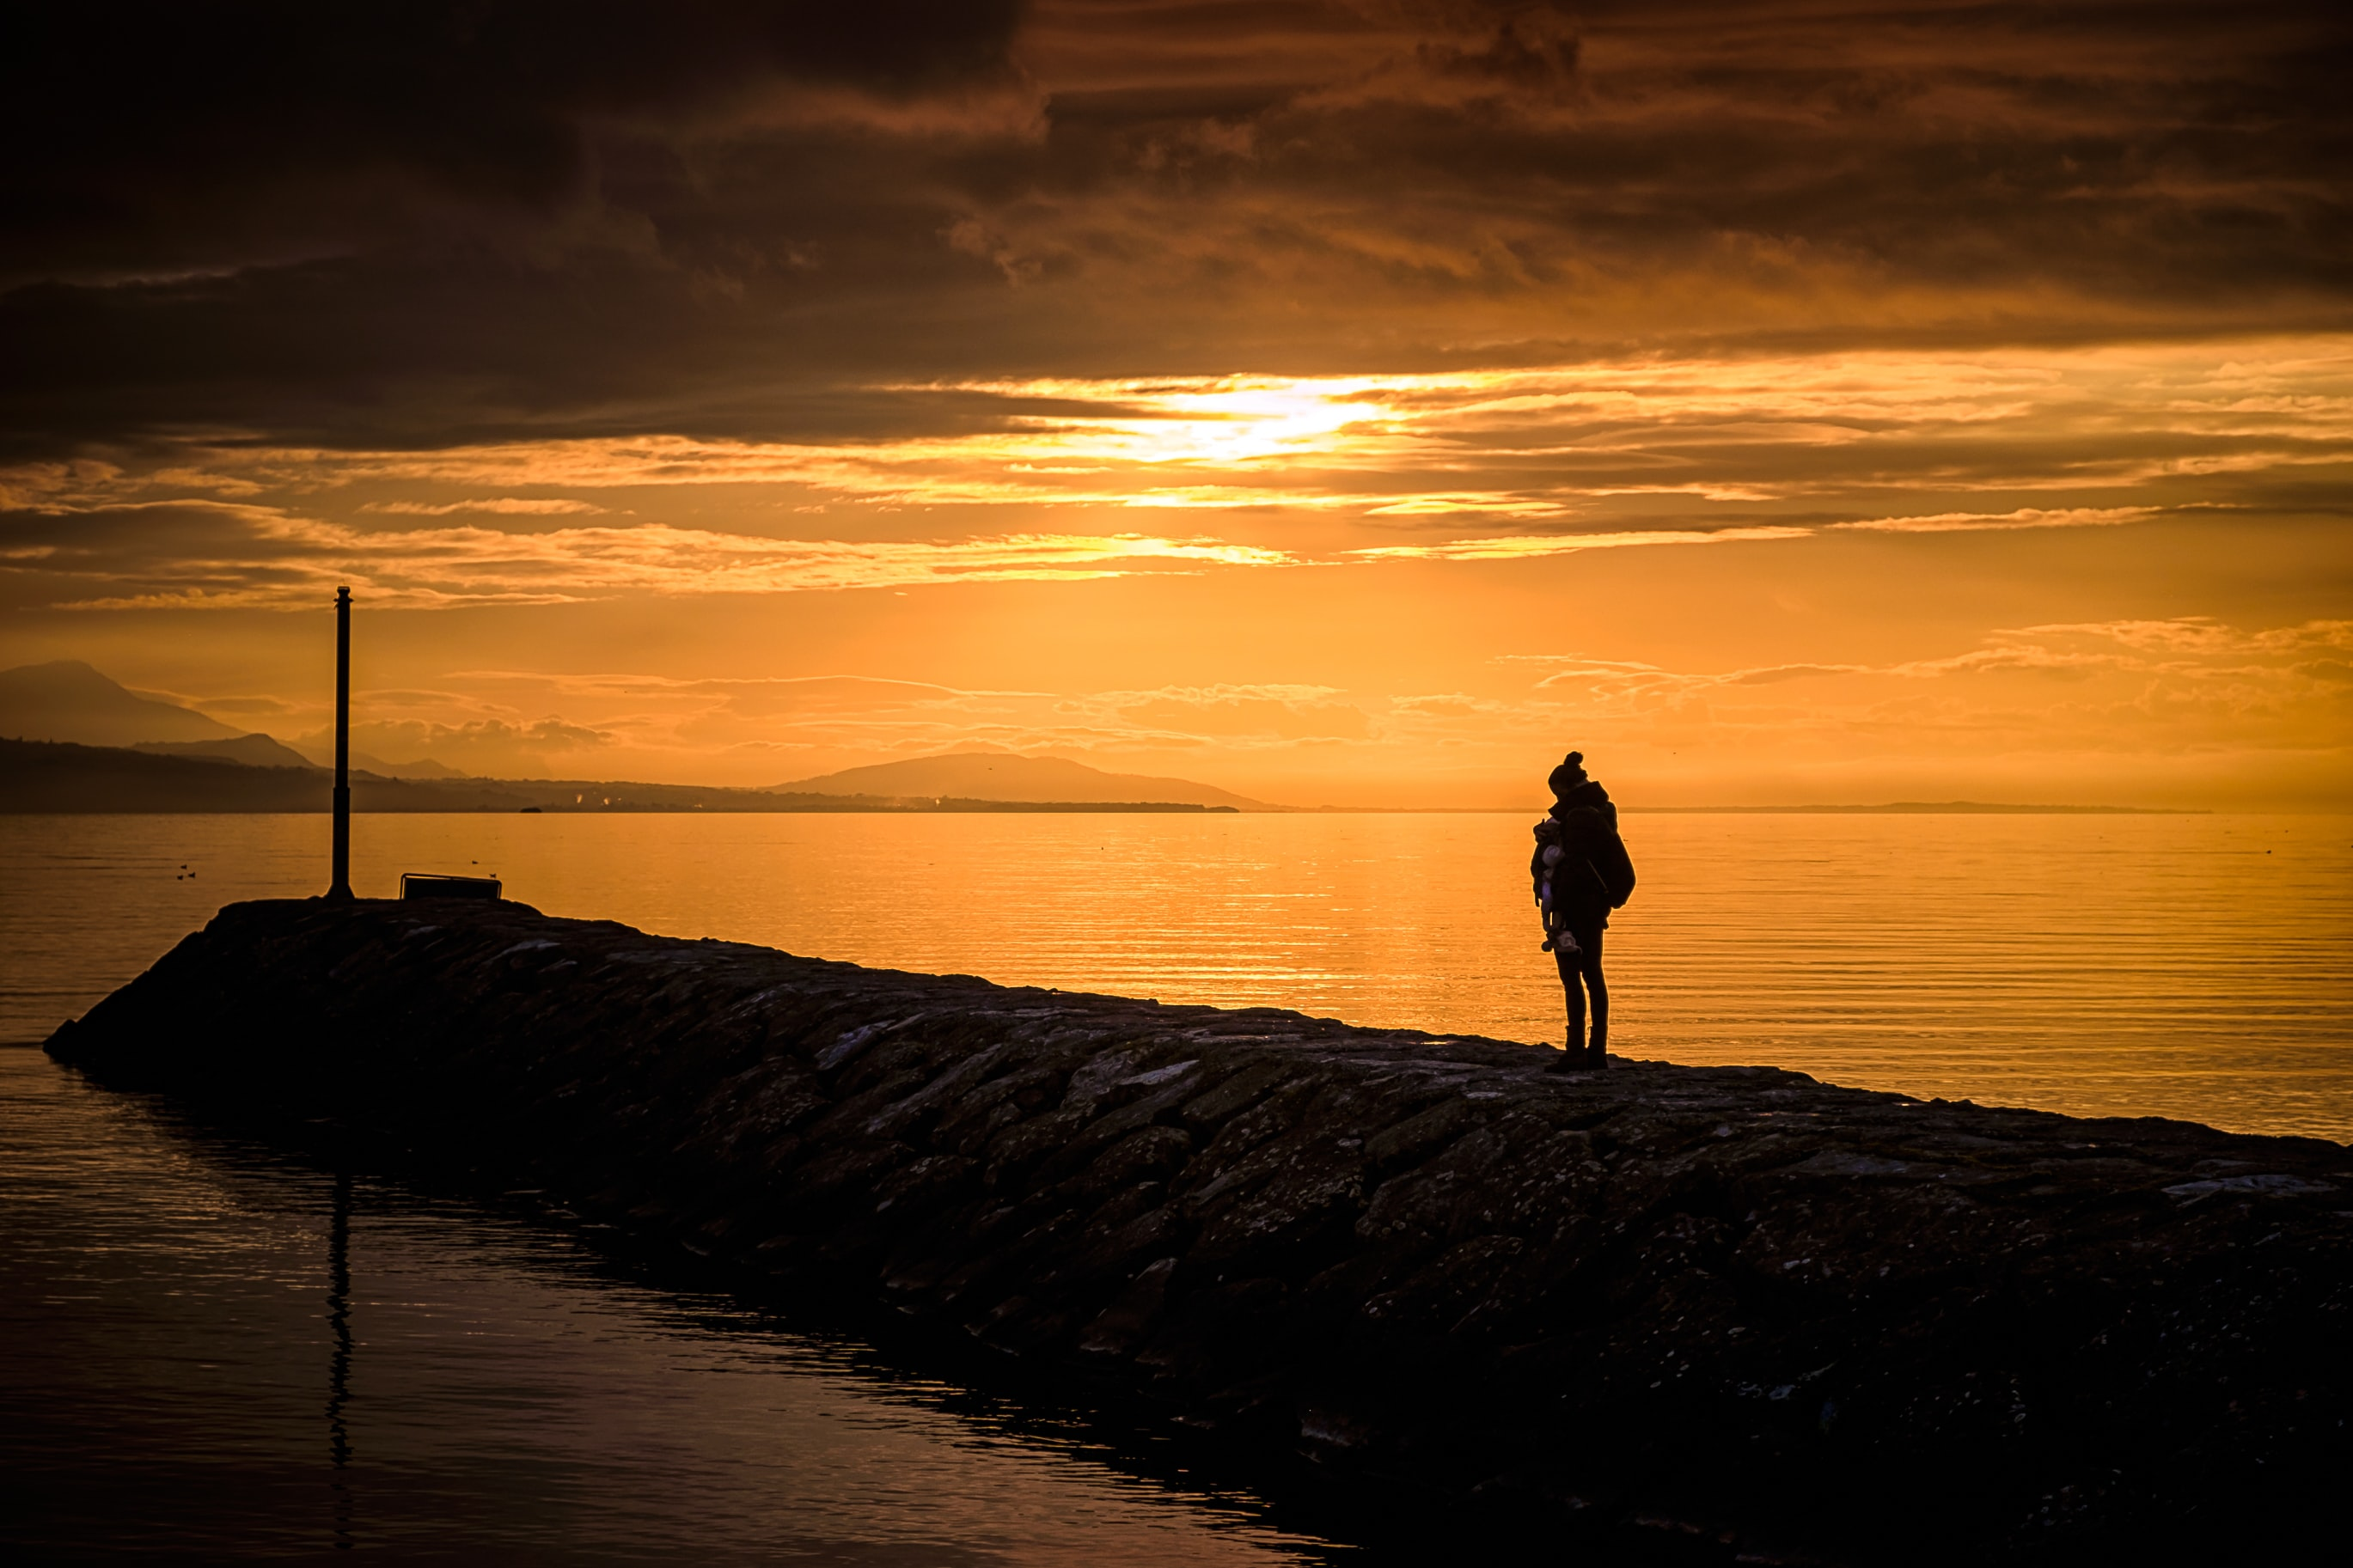 silhouette of person standing near body of water